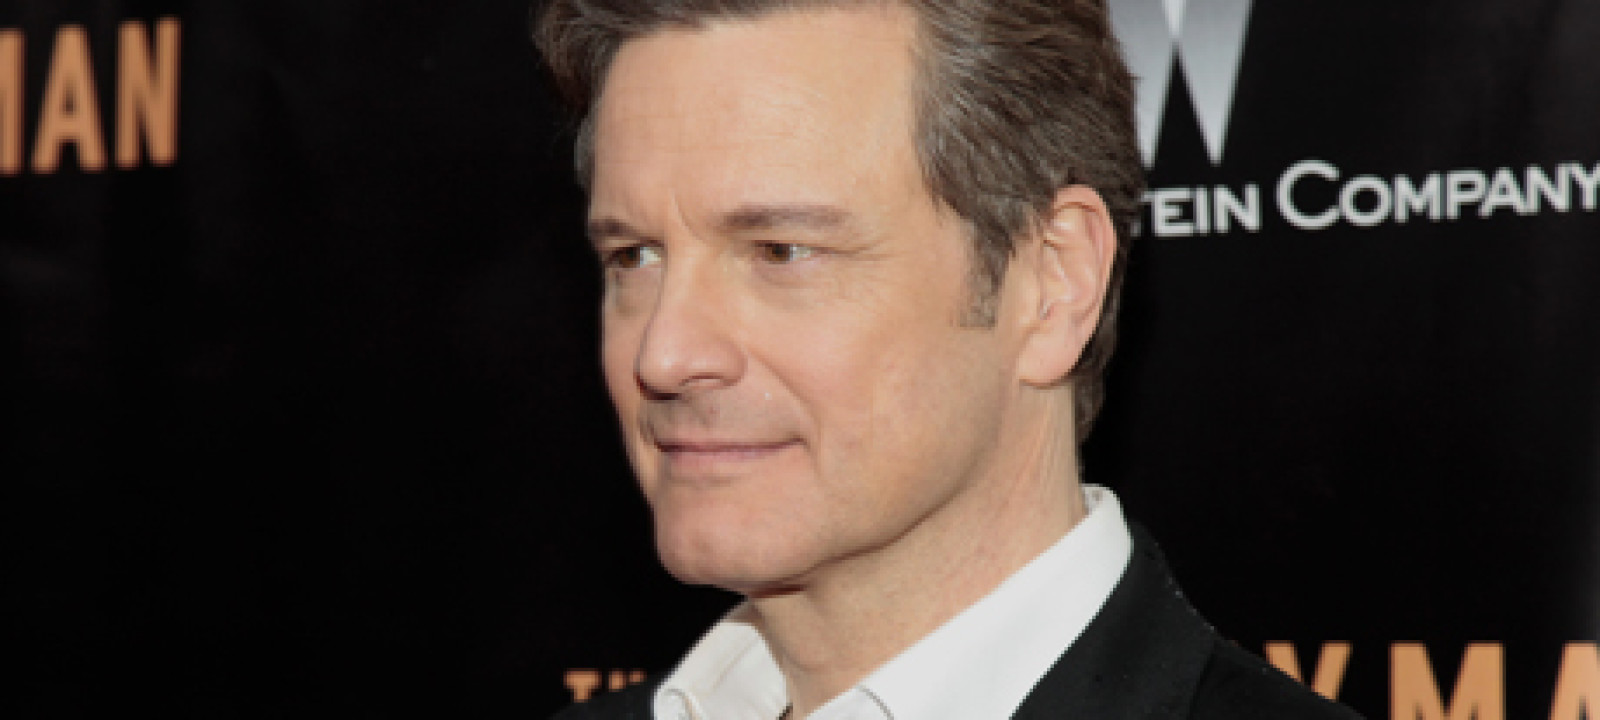 Colin Firth